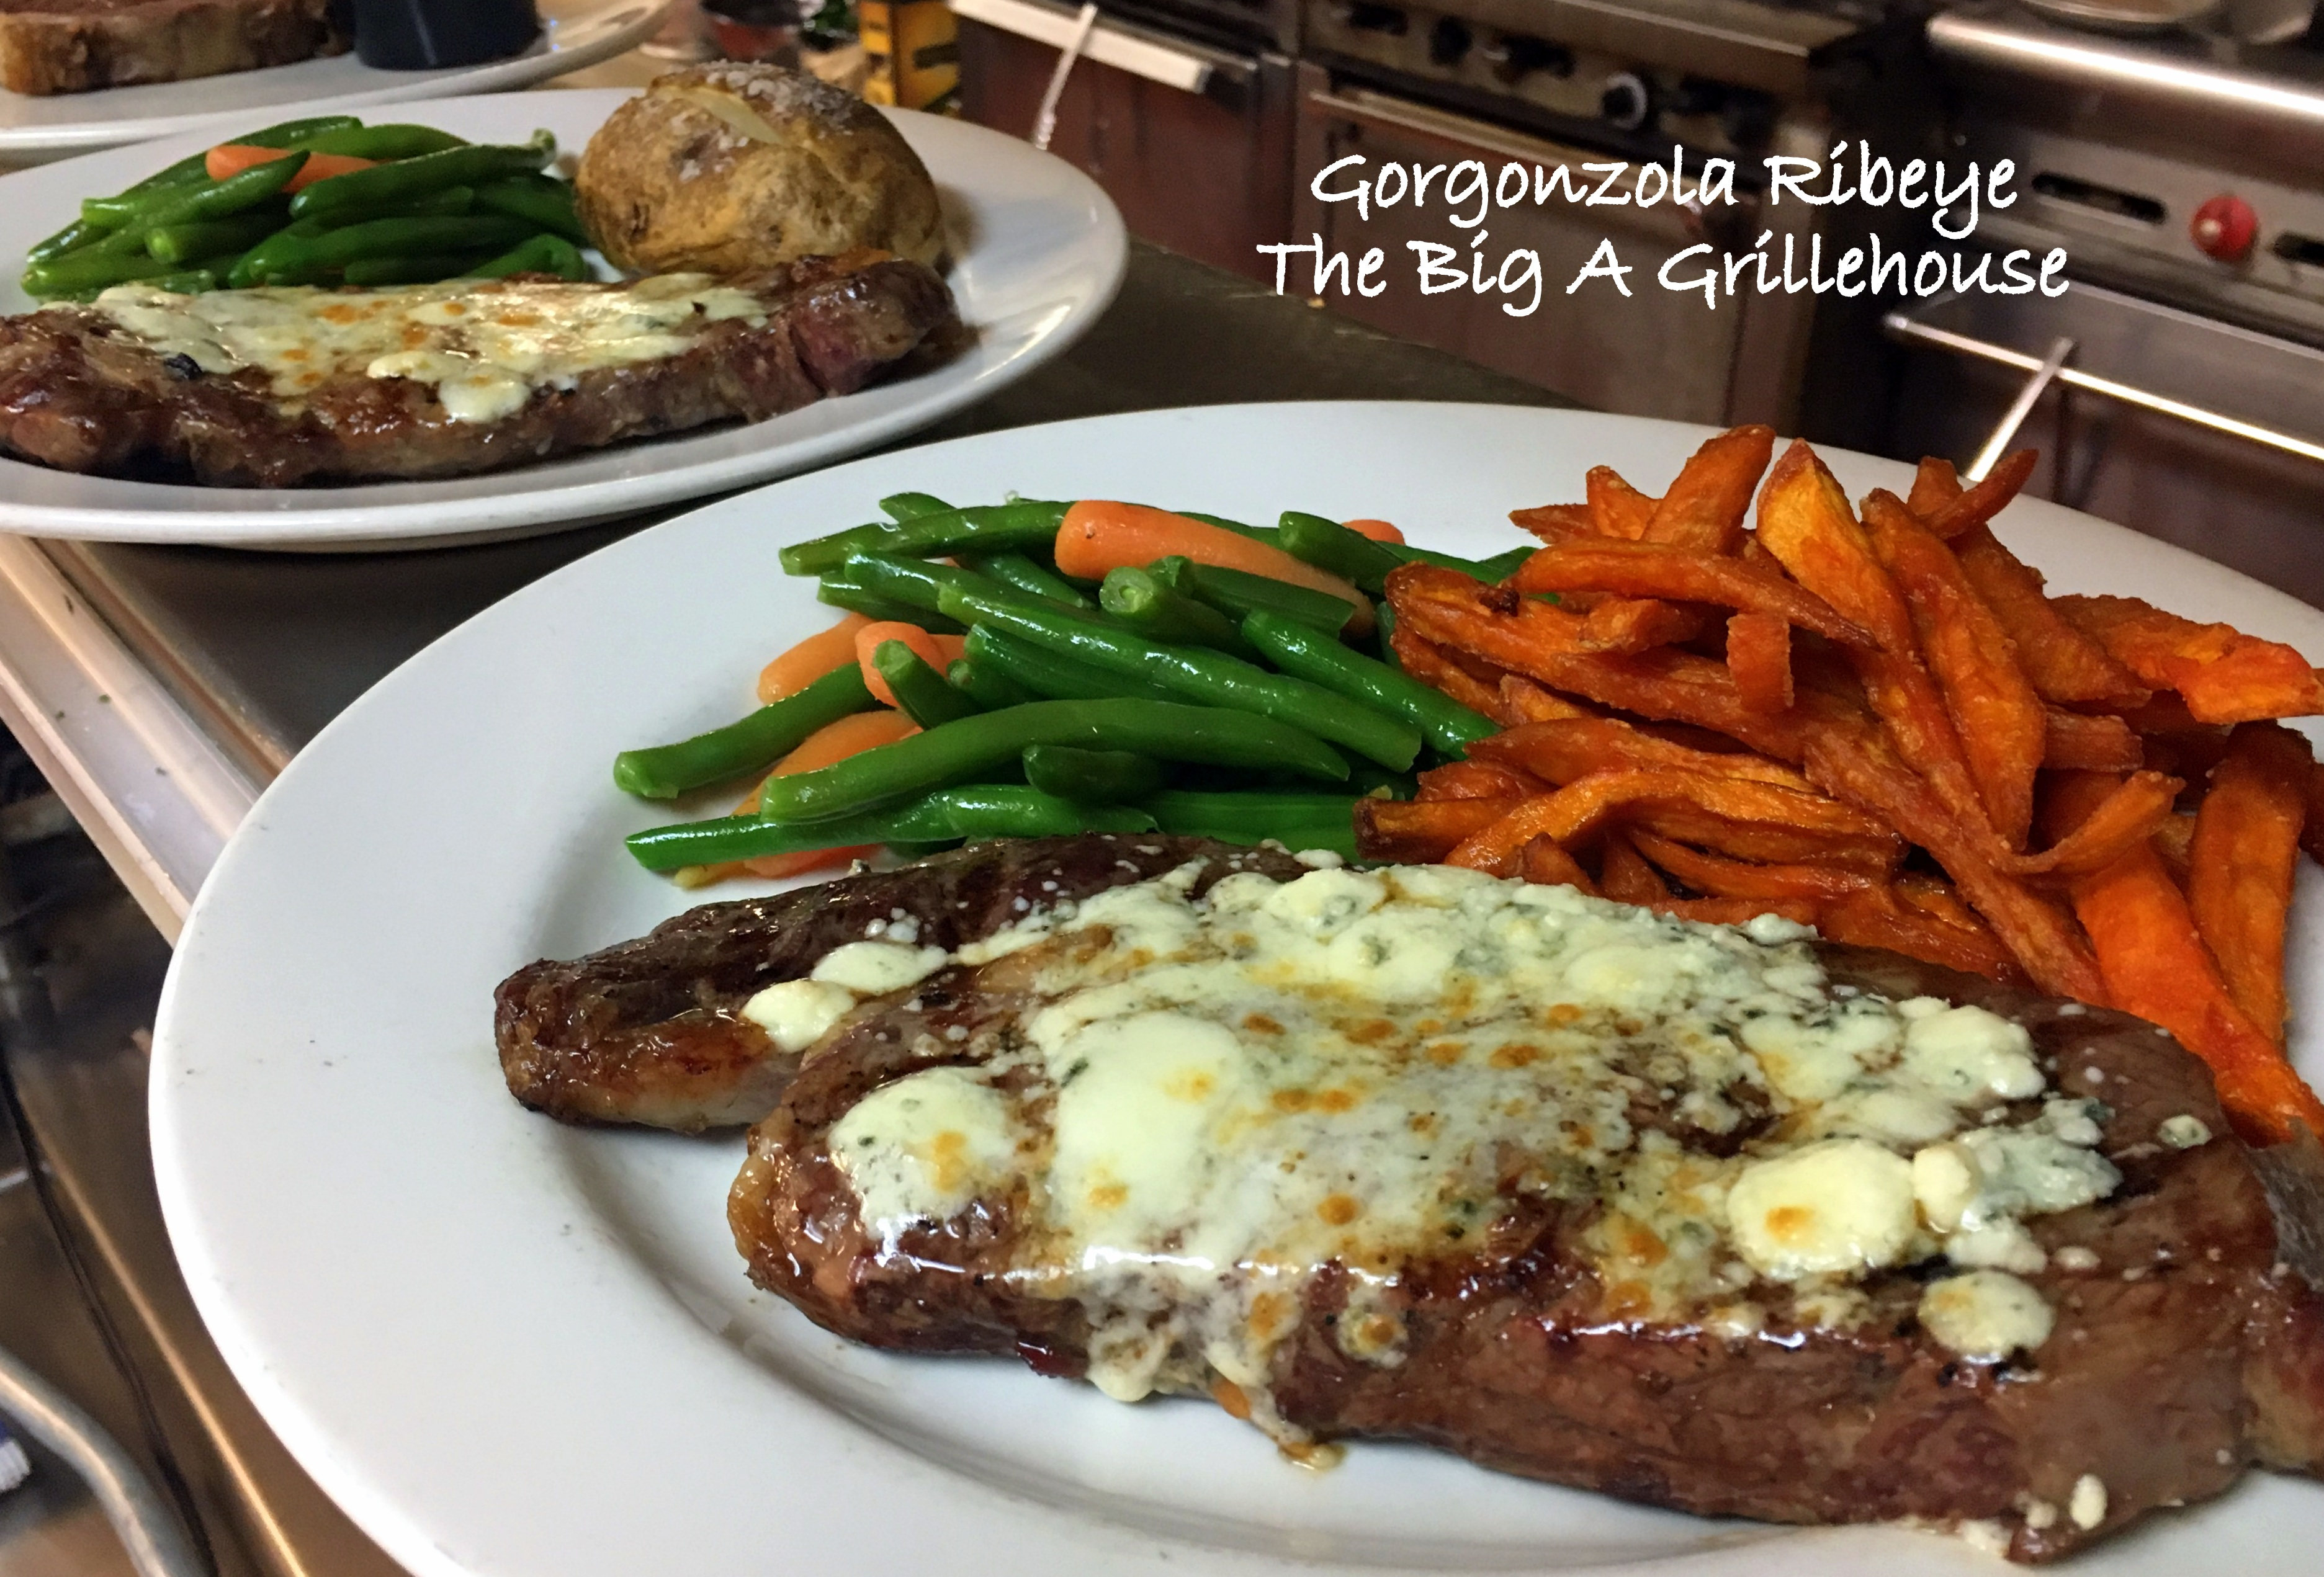 The Big A Grillehouse